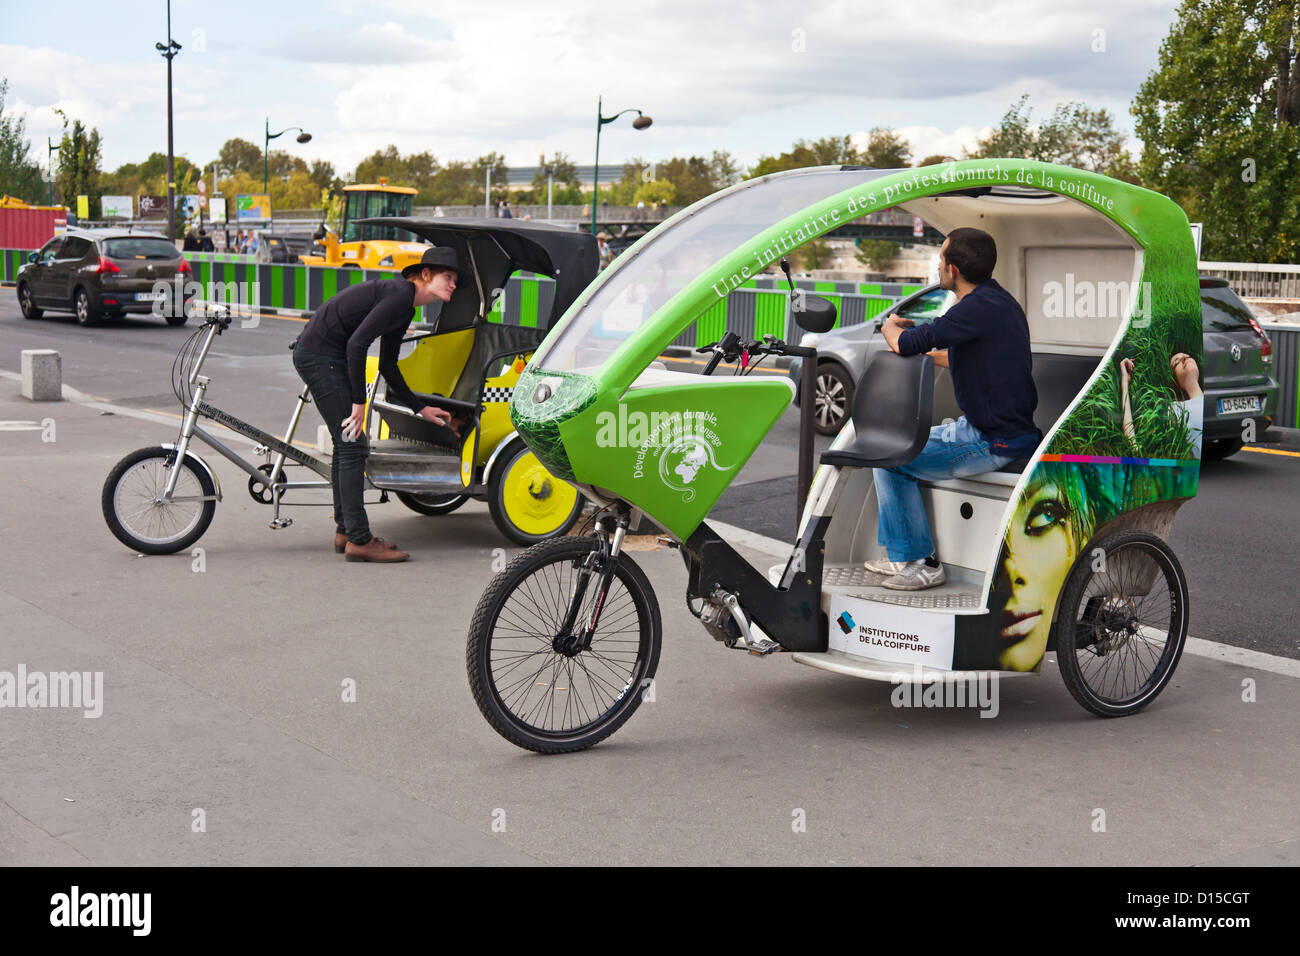 Two types of cycle rickshaw and their drivers in central Paris, France. Eco-friendly transport. Street scene. Two - Stock Image